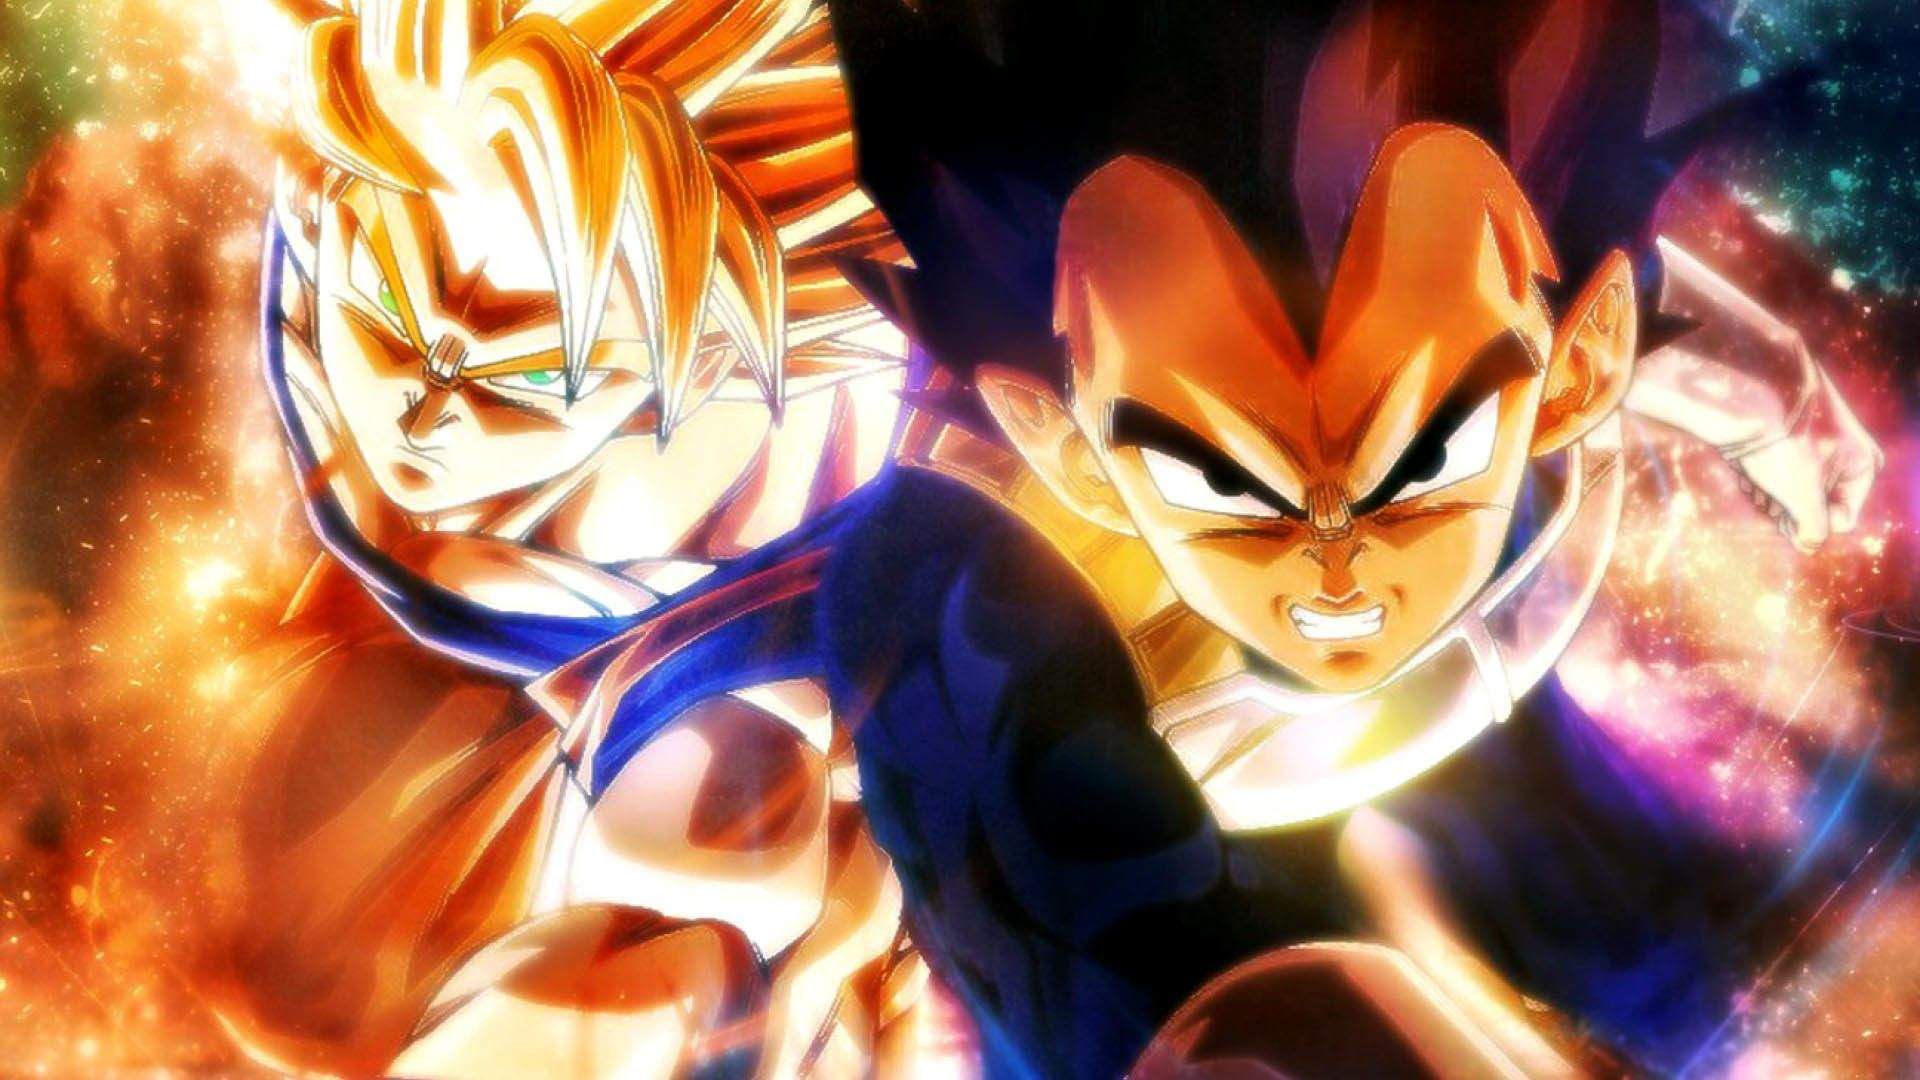 Dragon Ball Goku And Vegeta Wallpaper 1920x1080 Dragon Ball Goku Vegeta 1920x1080 Wallpaper Vegeta Cell Dragon Ball Goku Hd Anime Wallpapers Goku And Vegeta